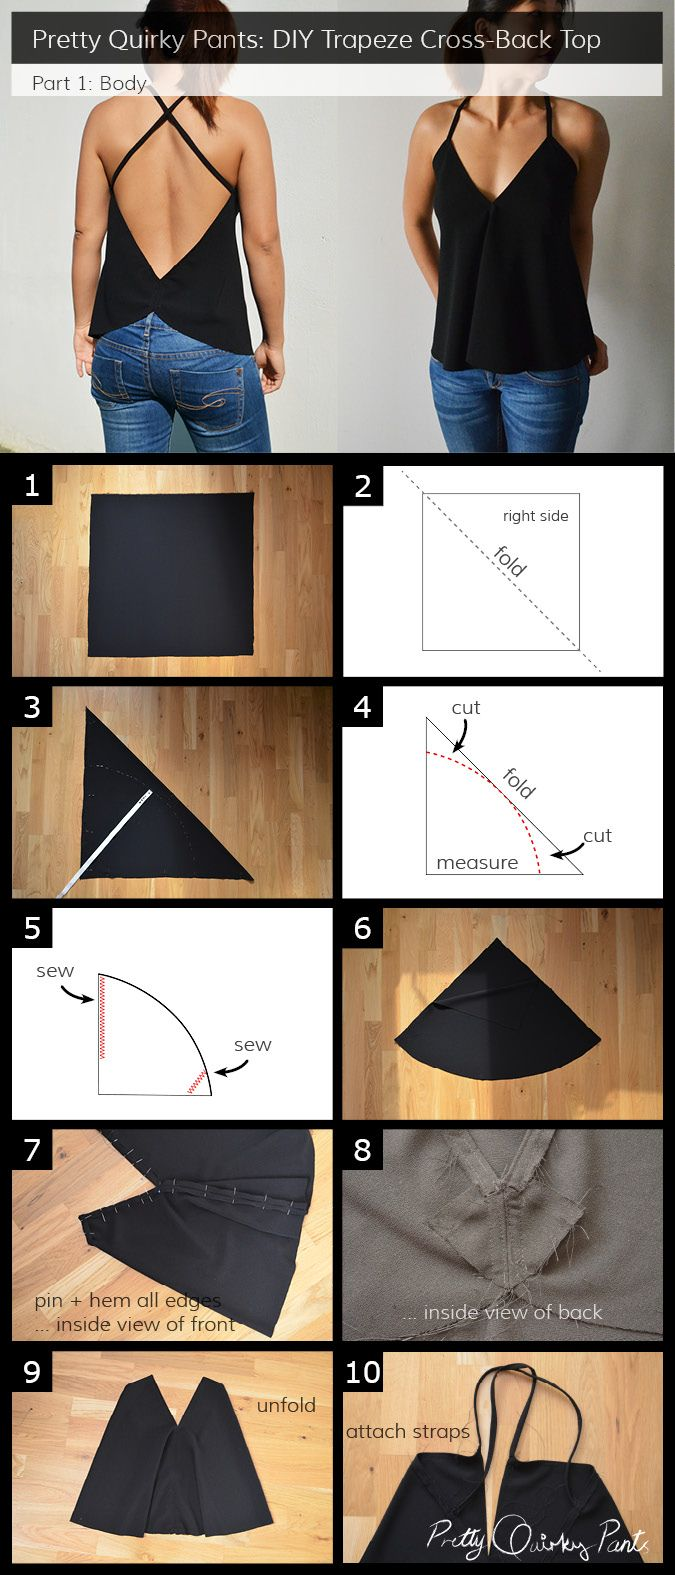 DIY Cross Back Top (trapeze shape) - step by step tutorial from Pretty Quirky Pants En rallongeant le patron pour une jolie robe estivale!